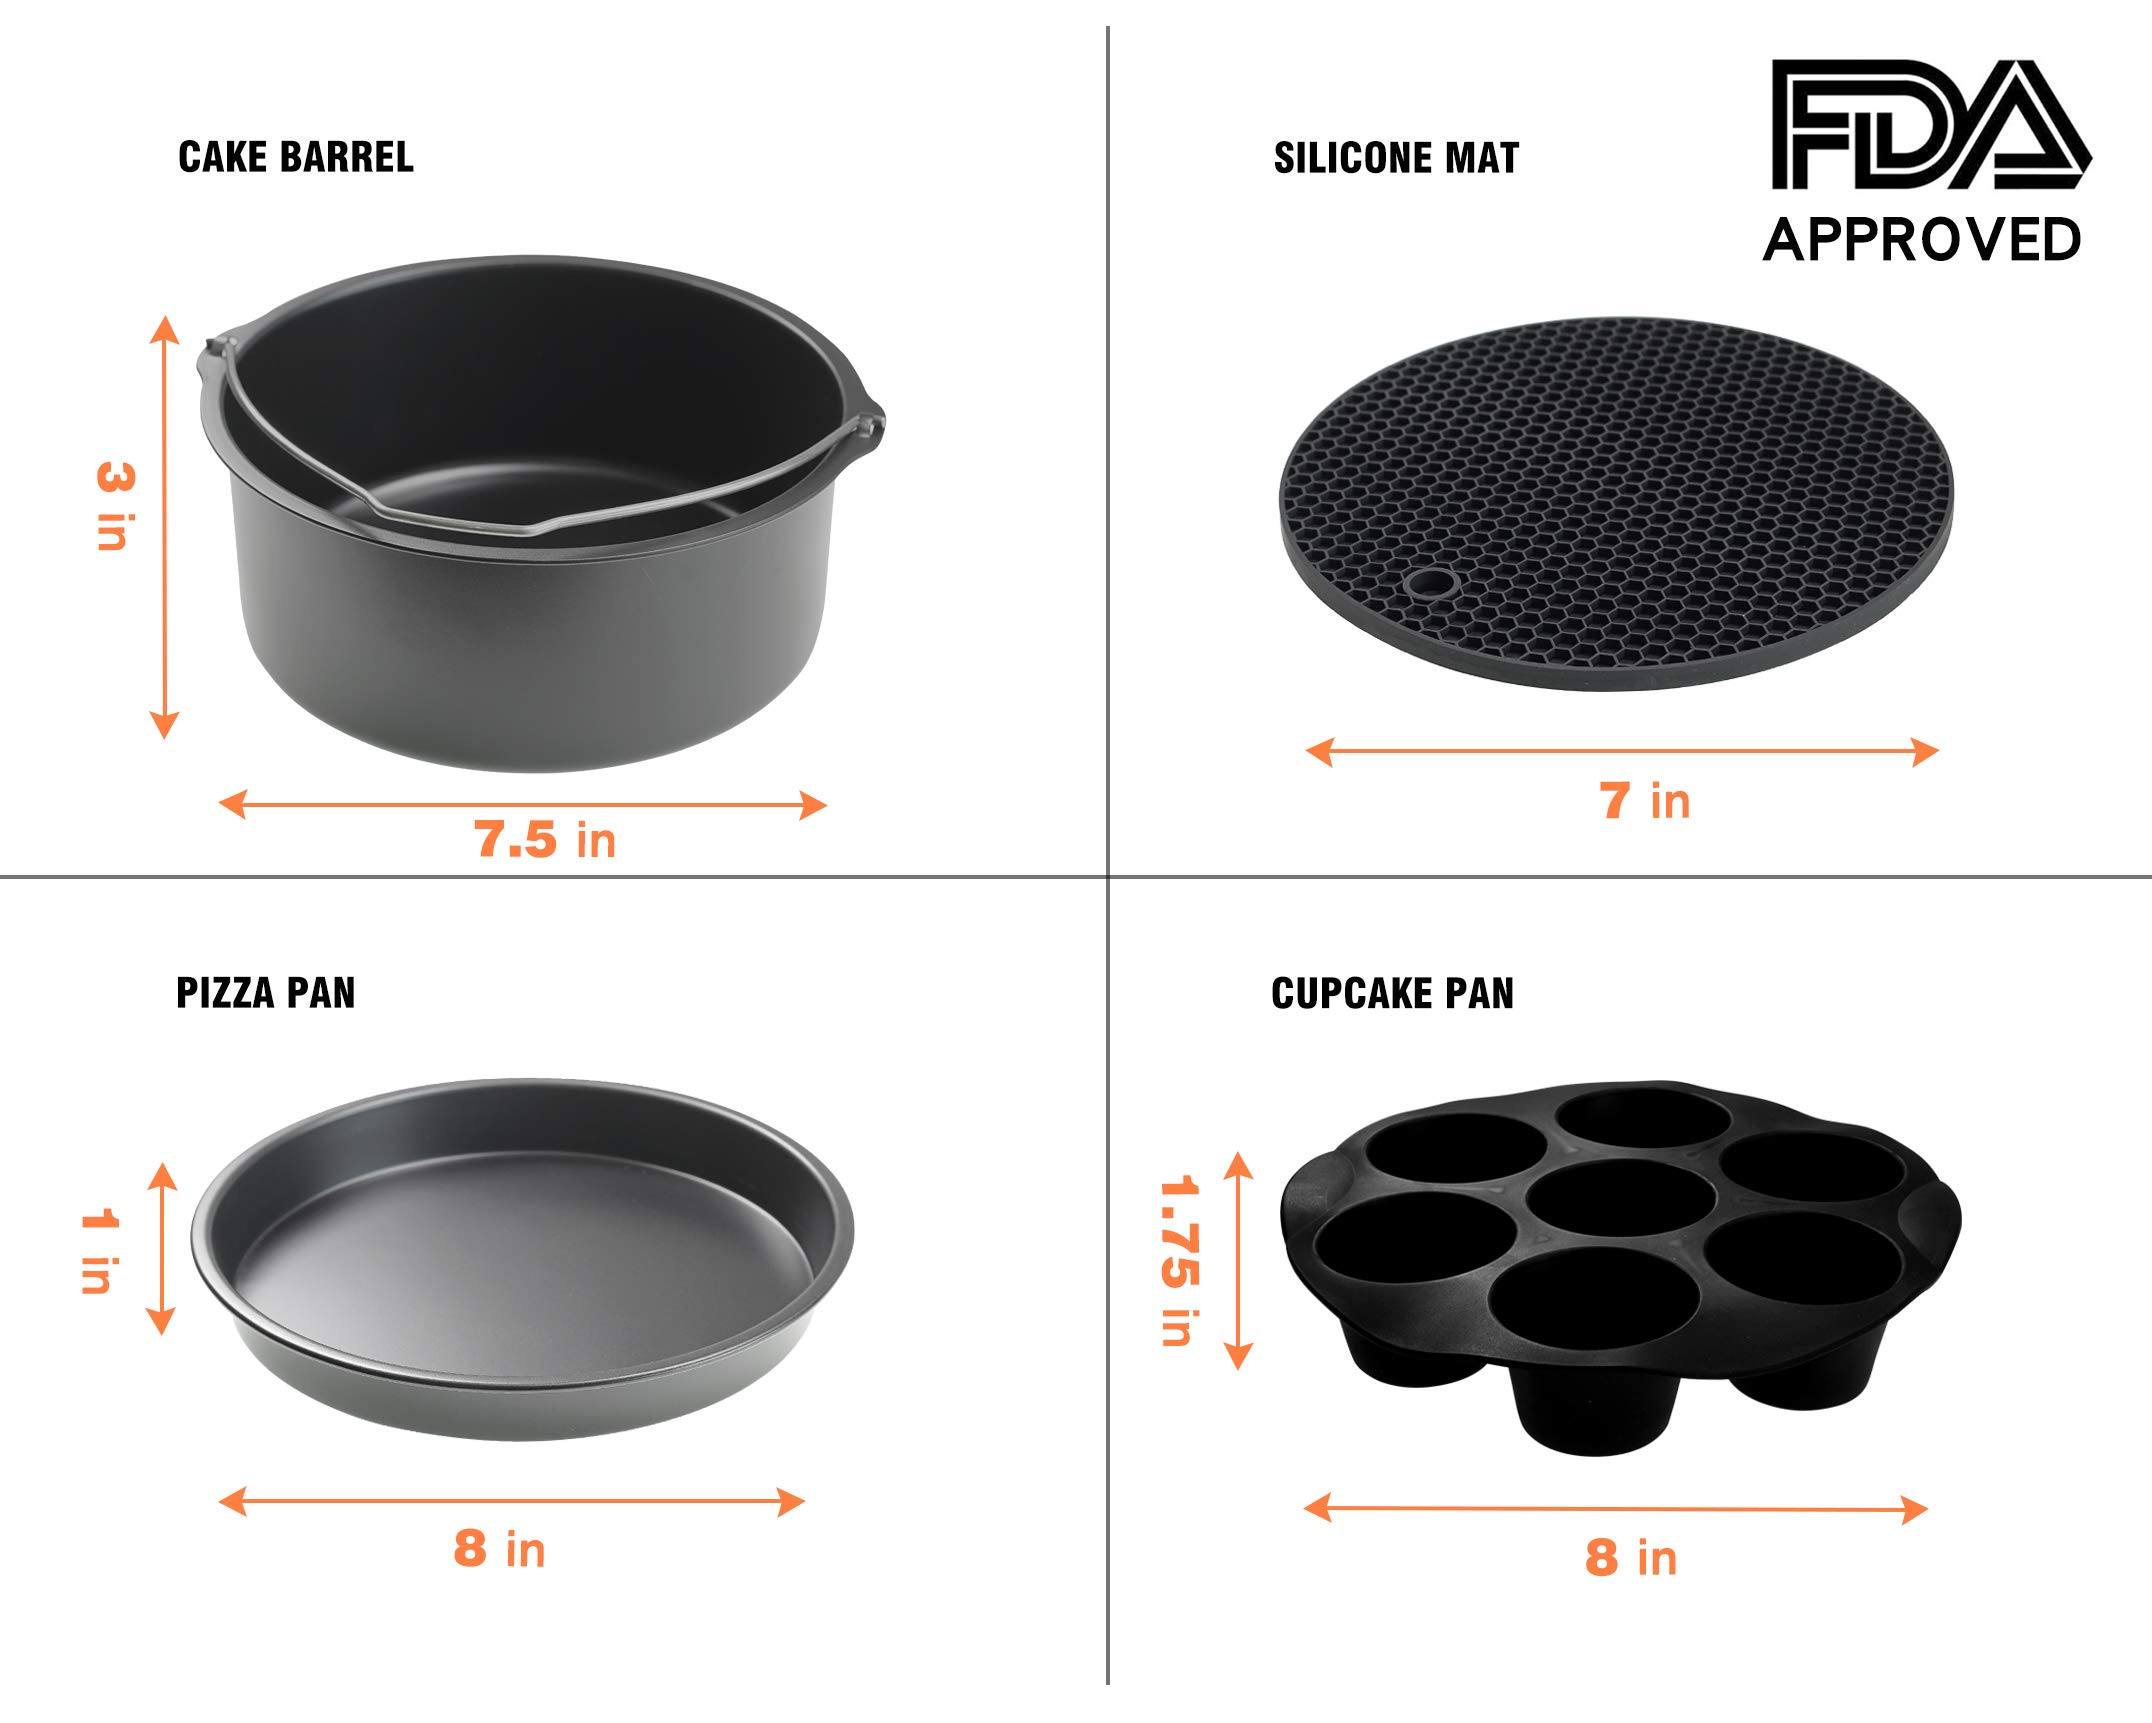 CAXXA XL Air Fryer Accessories Compatible with Gowise, Cozyna and Phillips, Fit all 4.2QT - 6.8QT and UP (Deluxe Set Of 9) by CAXXA (Image #3)